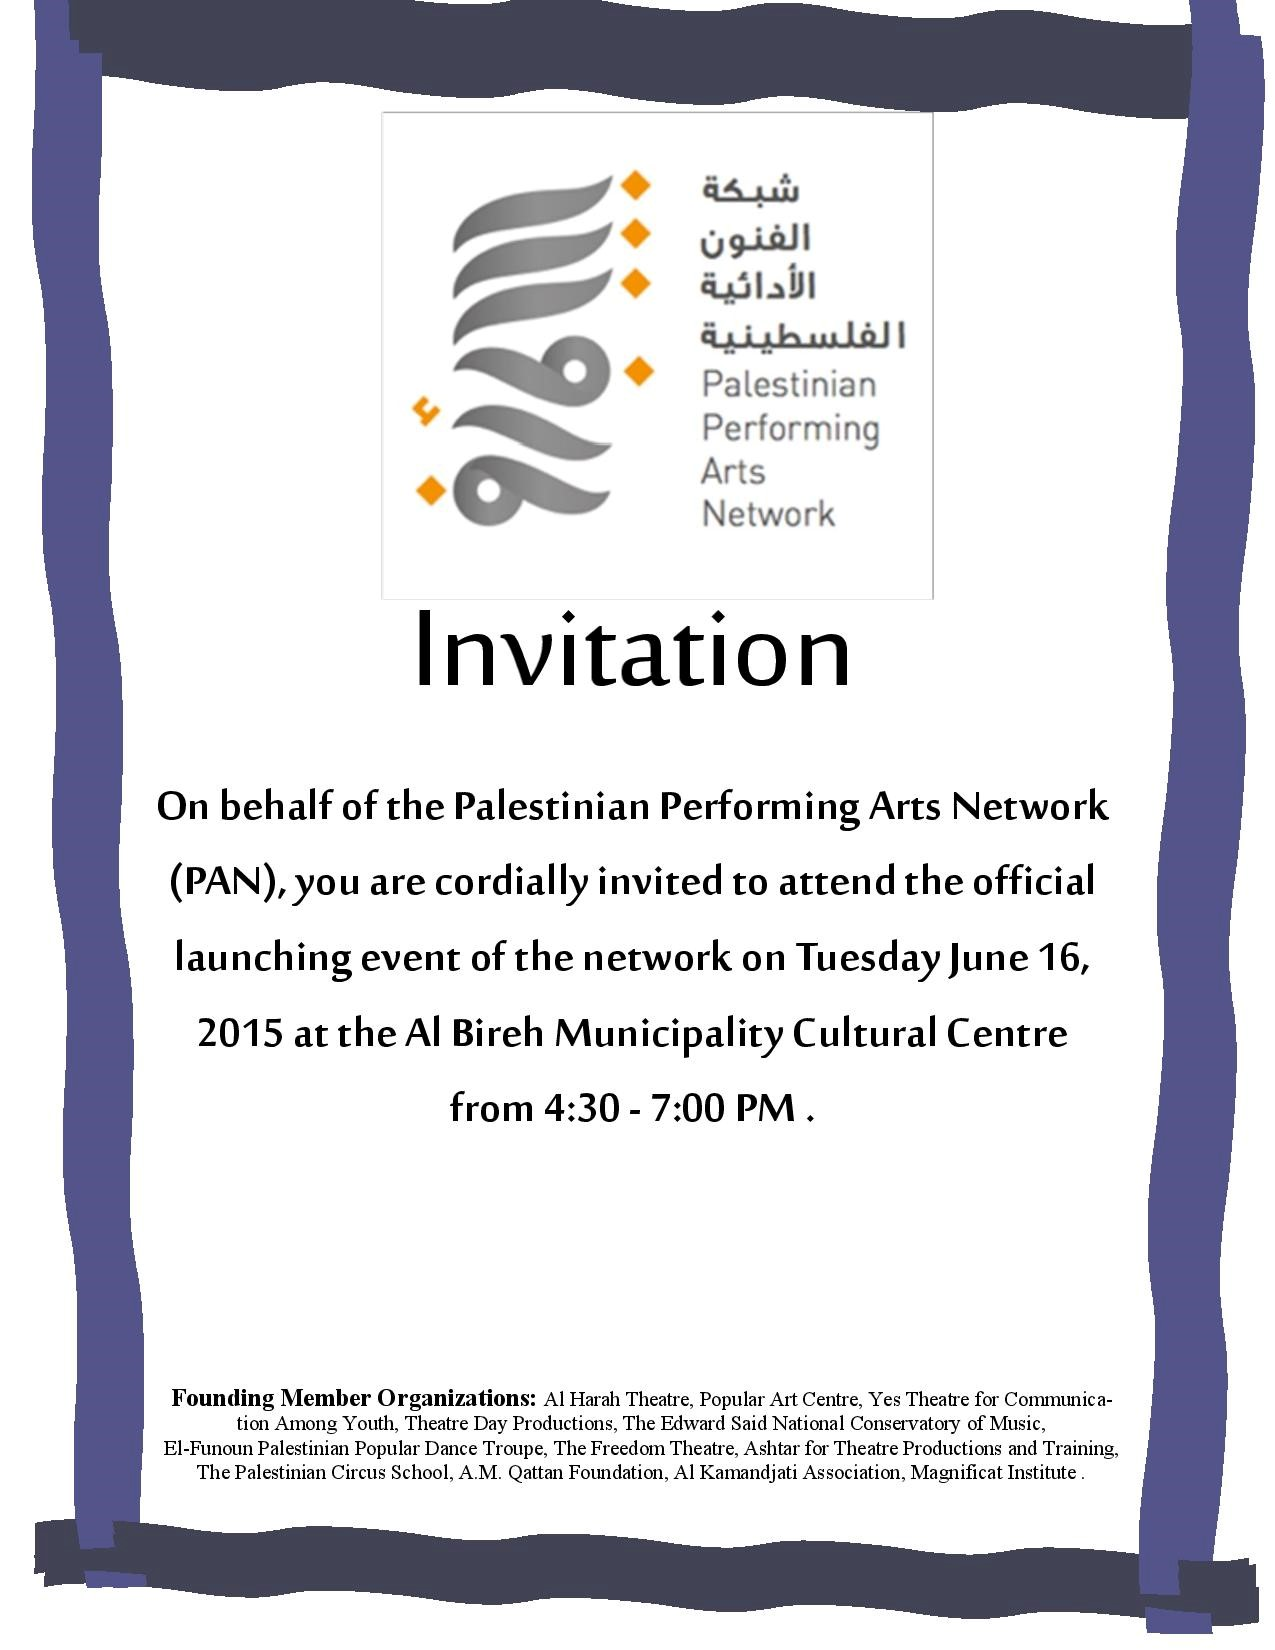 Launch of the Palestinian Performing Arts Network